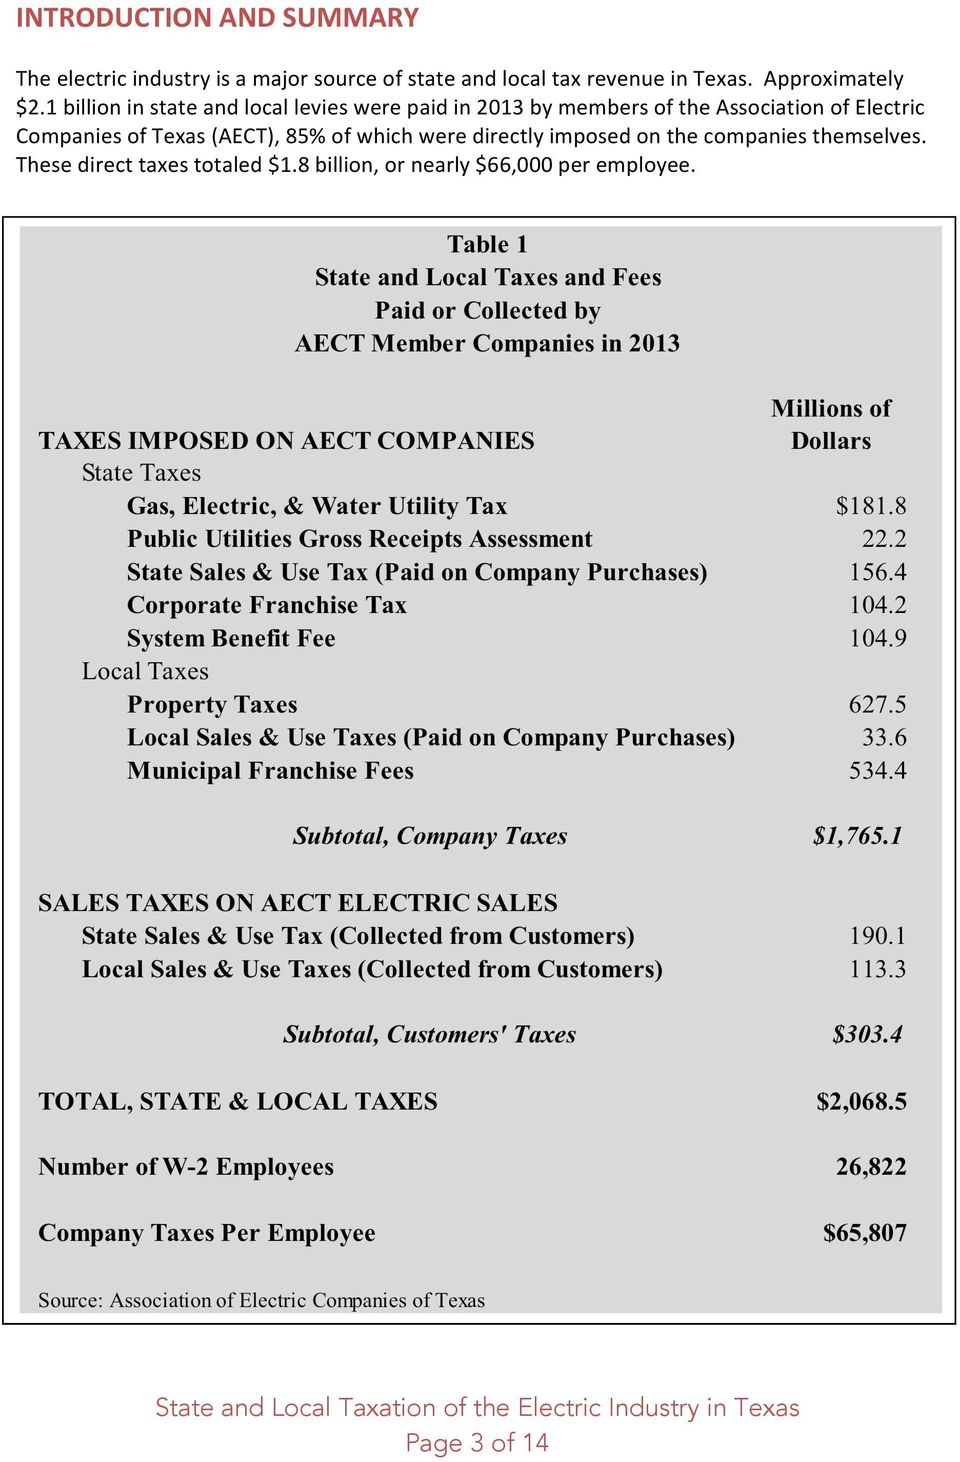 directly imposed on the companies themselves. These direct taxes totaled $1.8 billion, or nearly $66,000 per employee.